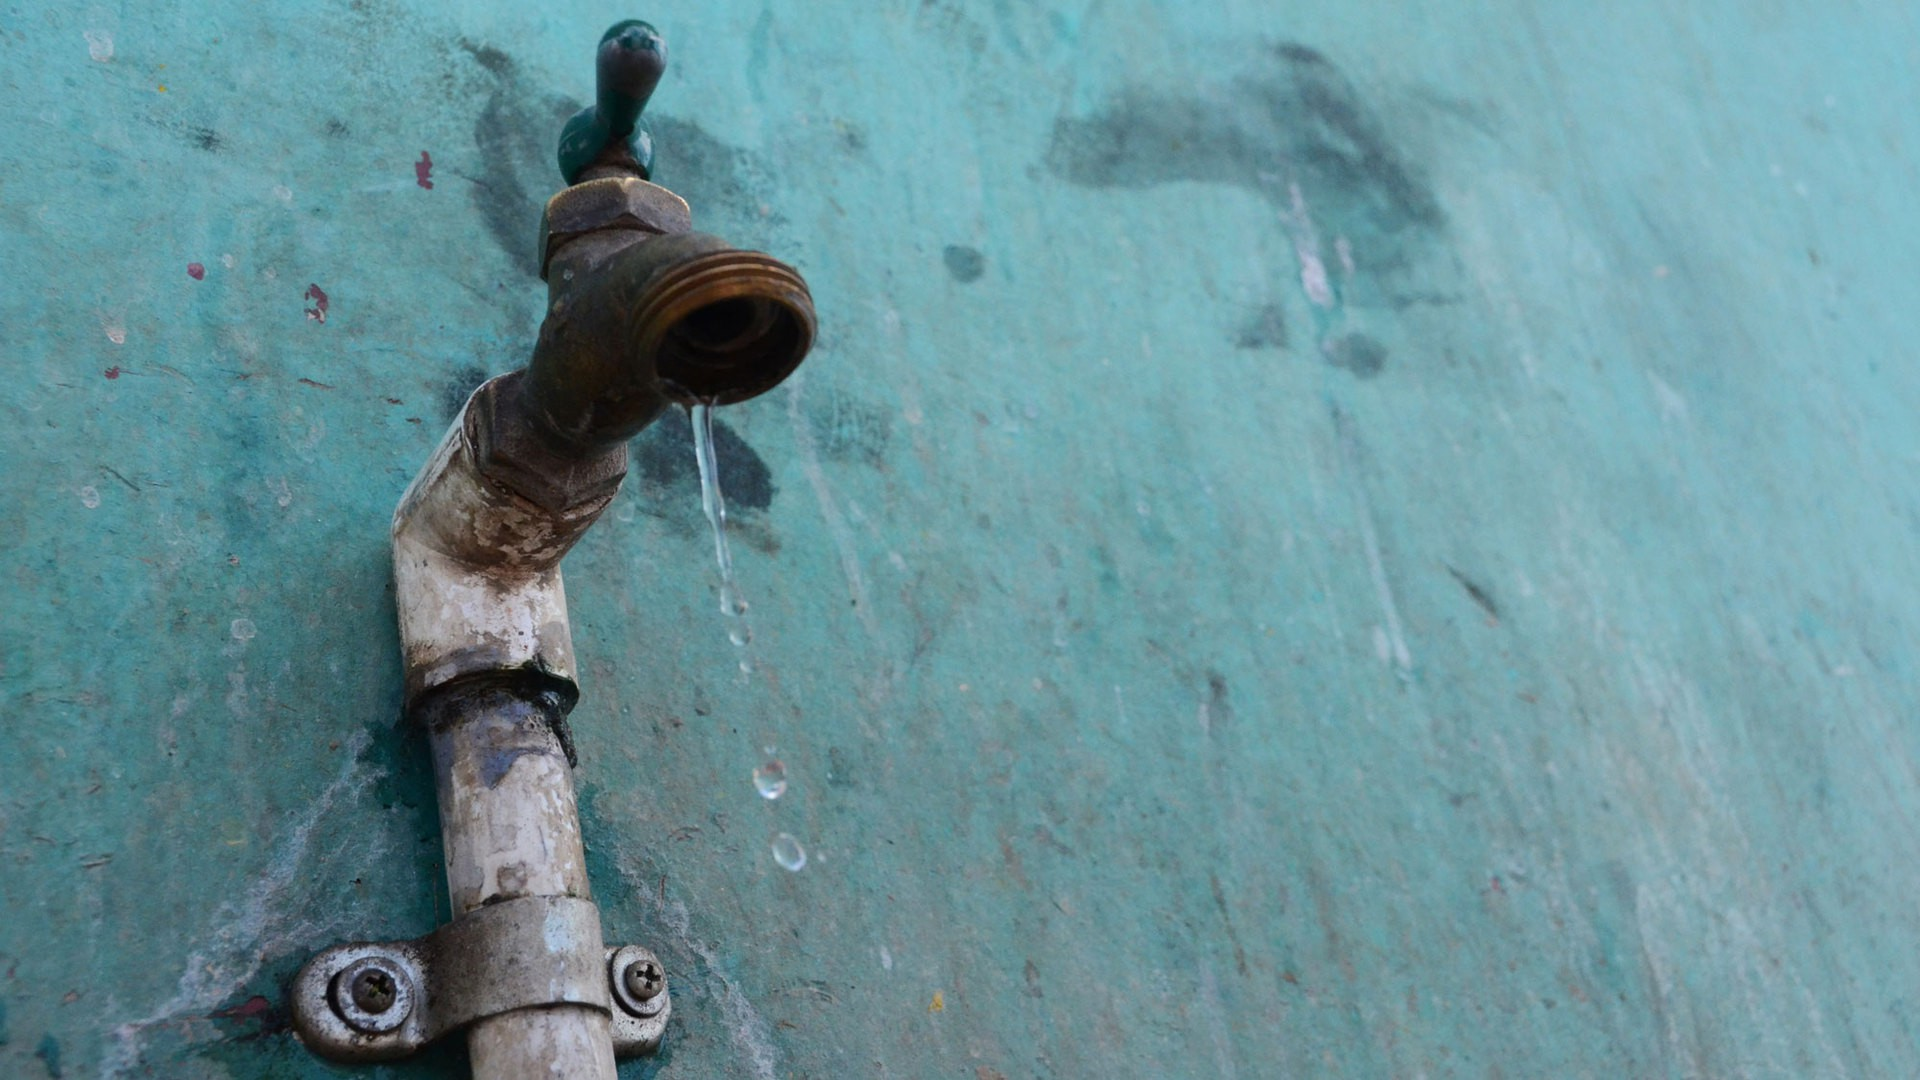 Water drips from a faucet on the island of Ometepe, which relies entirely on the lake for its water supply. (Photo by Cydney McFarland)